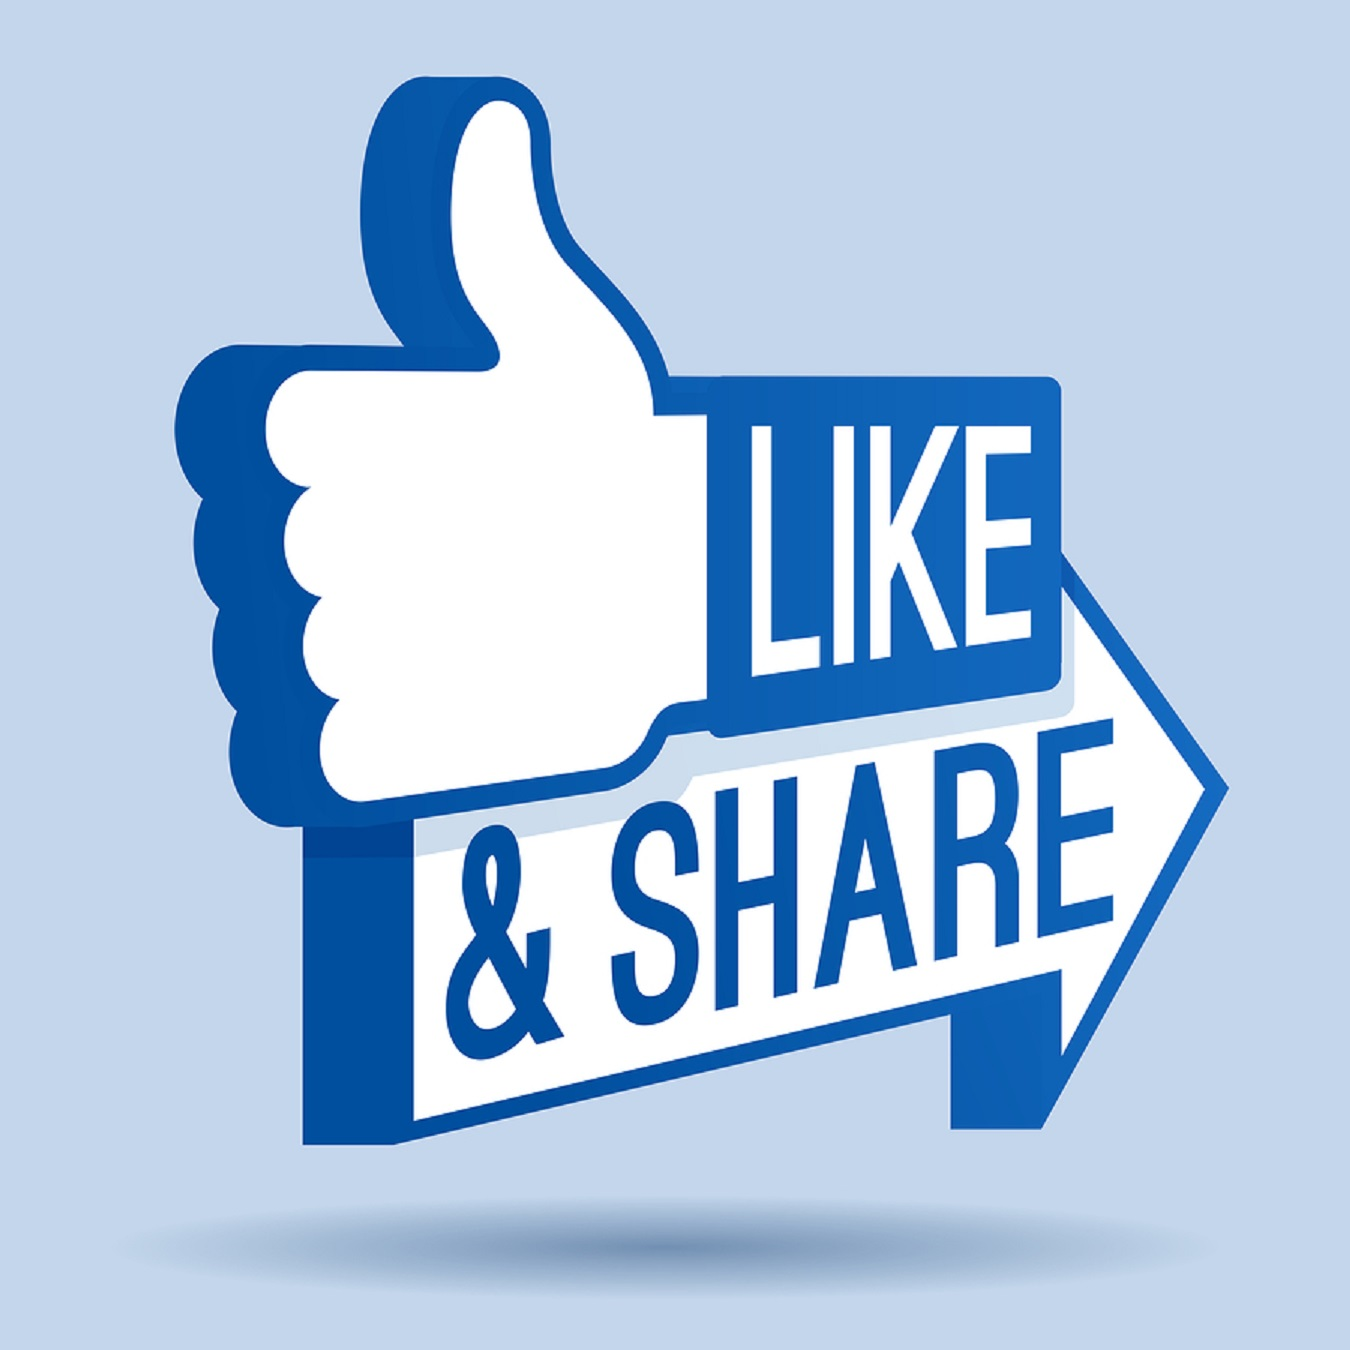 Get 280-300 likes and share on your Facebook page and clicks to your desired link